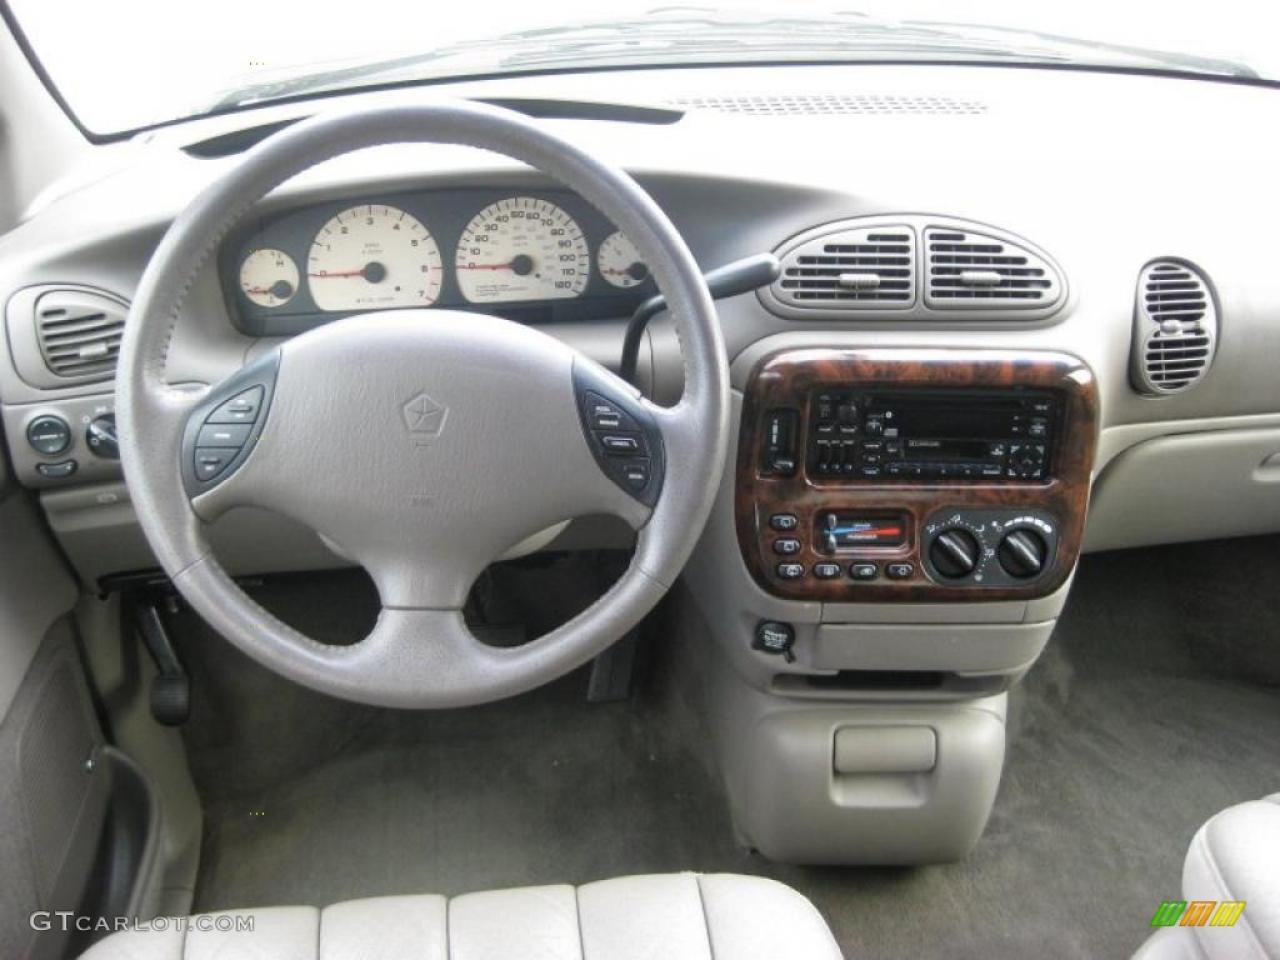 800 1024 1280 1600 Origin 1999 Chrysler Town And Country